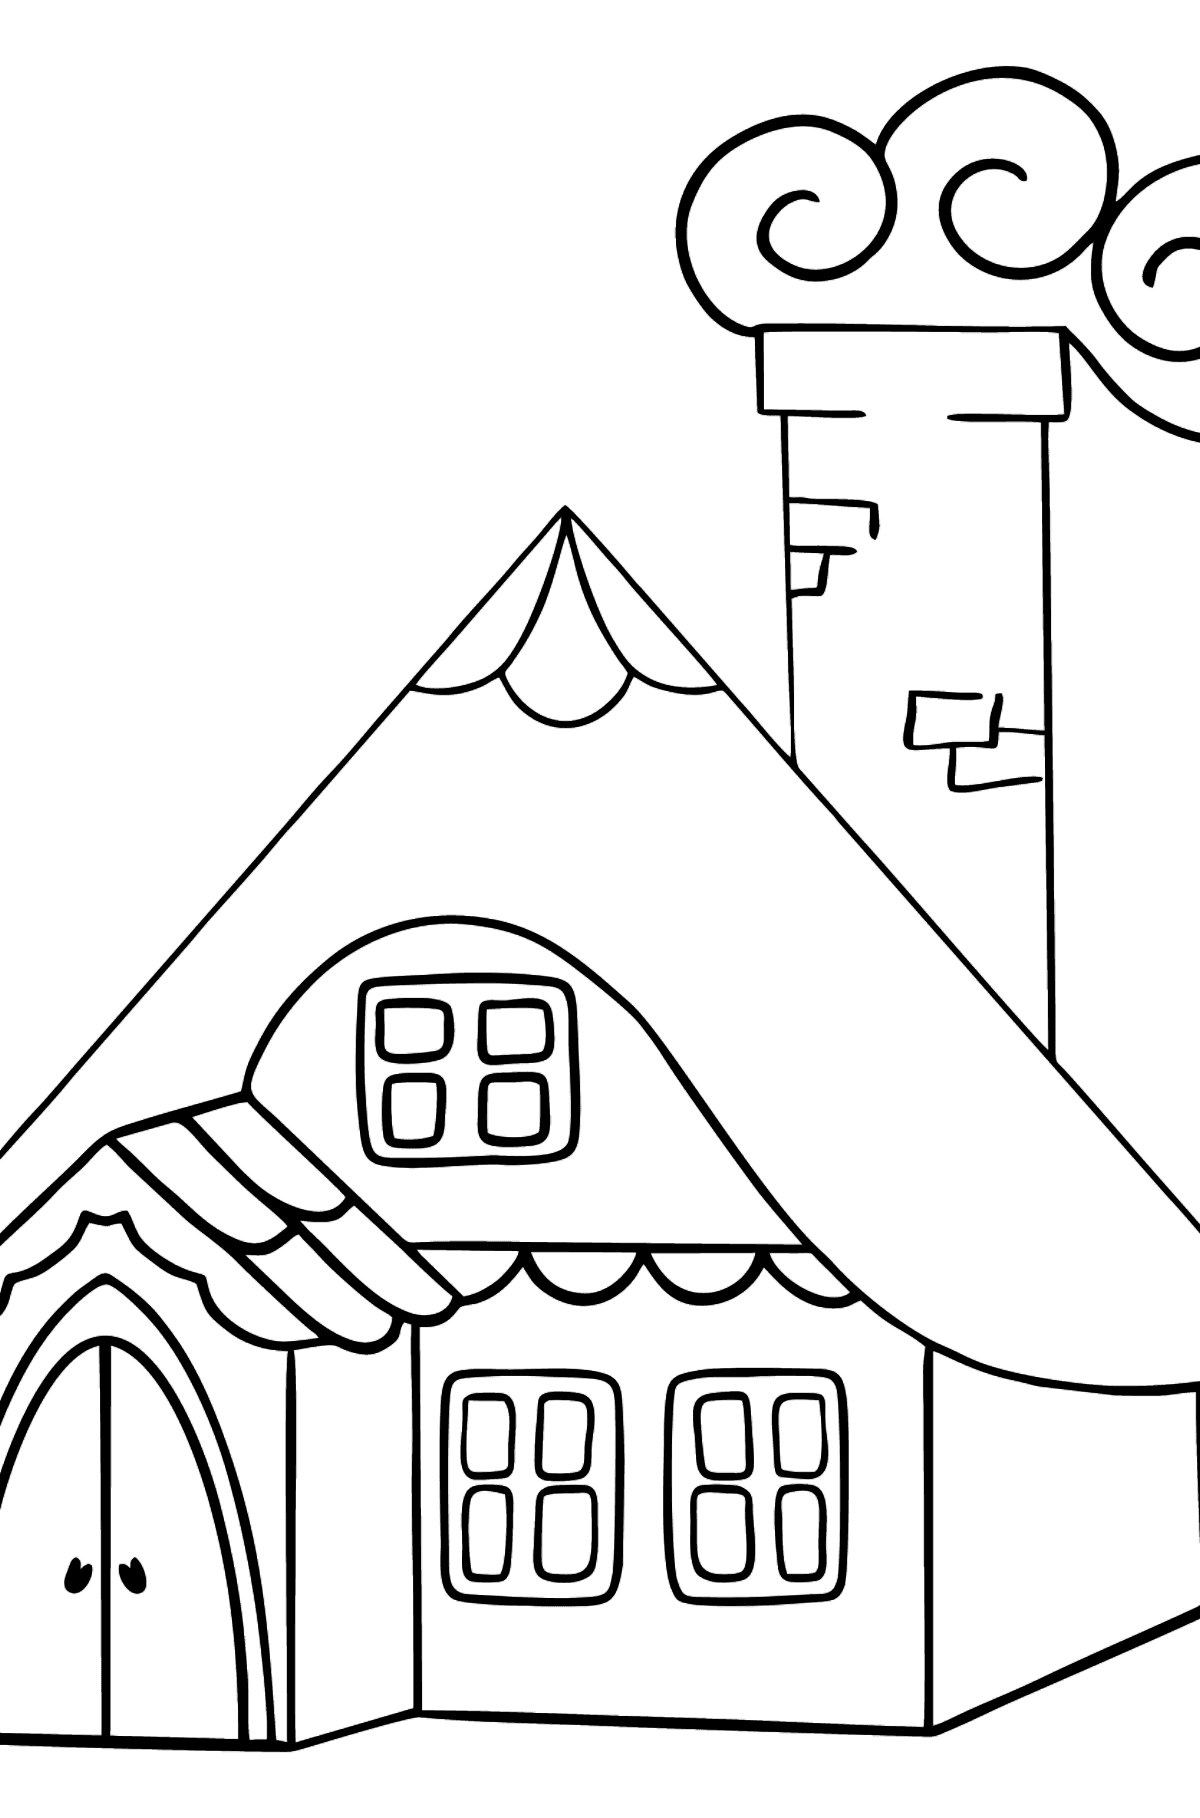 Coloring Page - A Wonderful House - Coloring Pages for Kids